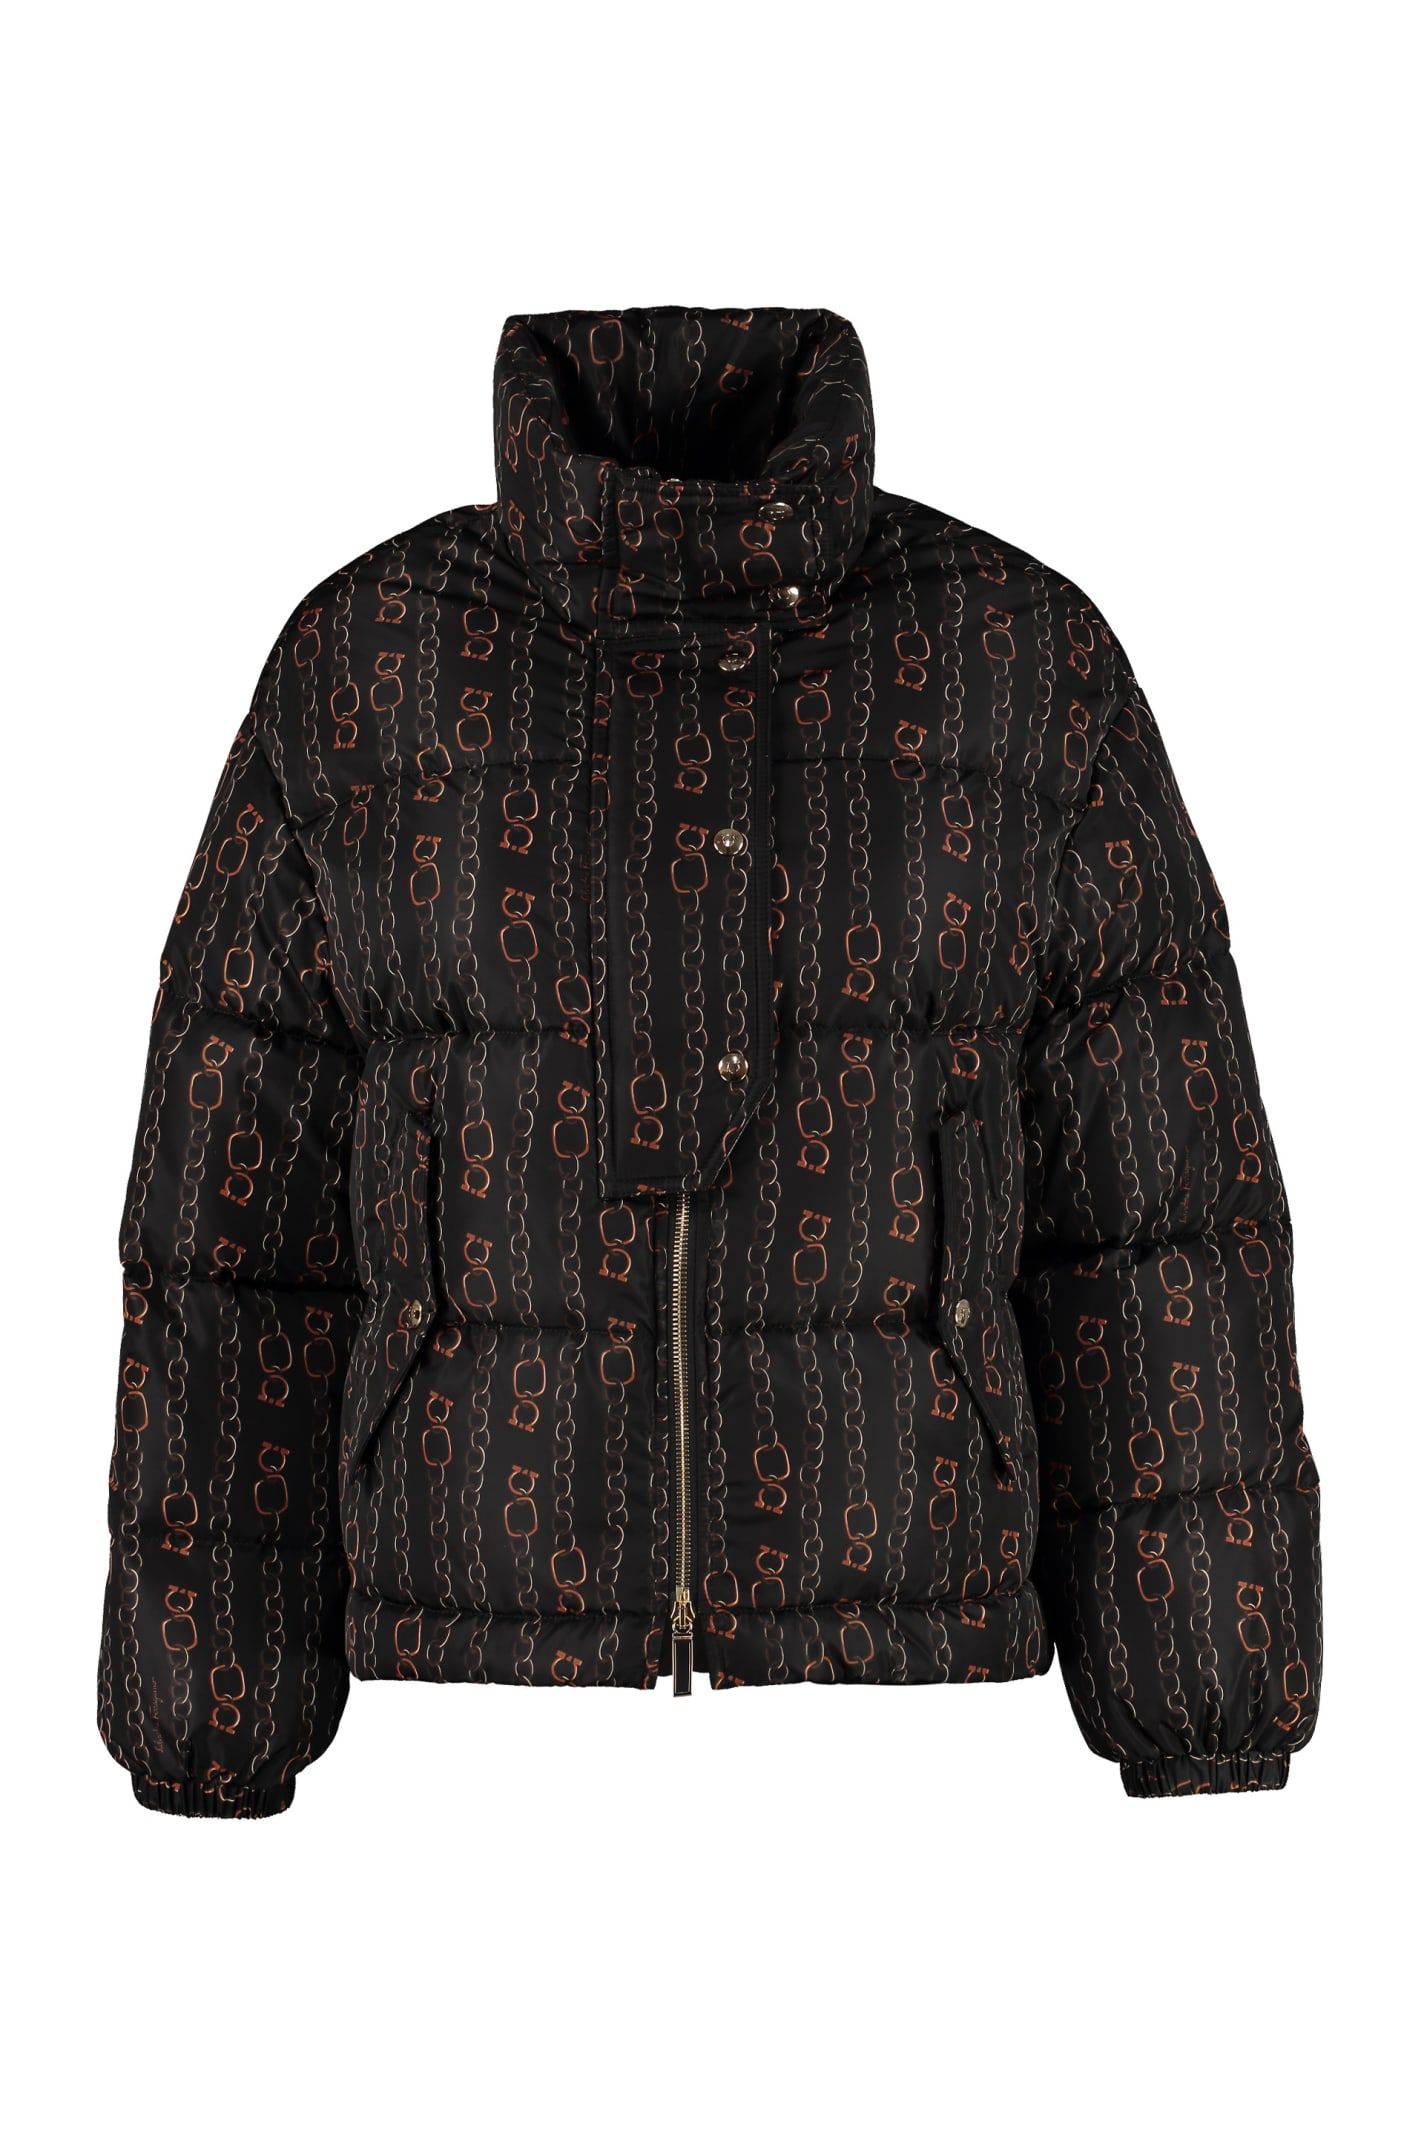 Salvatore Ferragamo Full Zip Padded Jacket